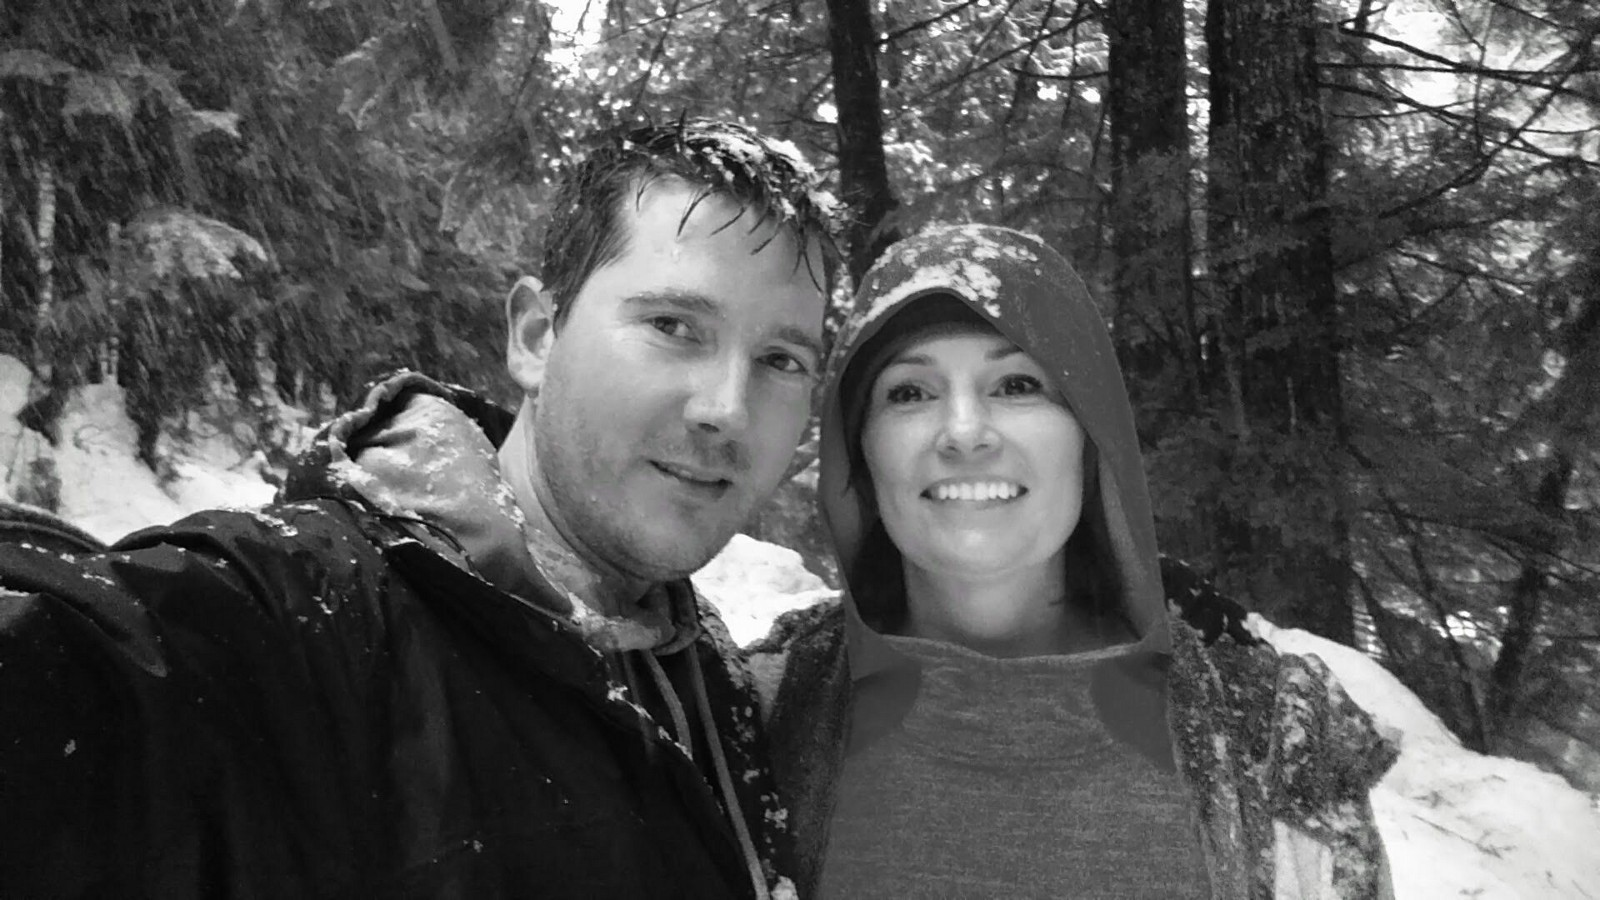 Hike finished! Good times in the snow :-)